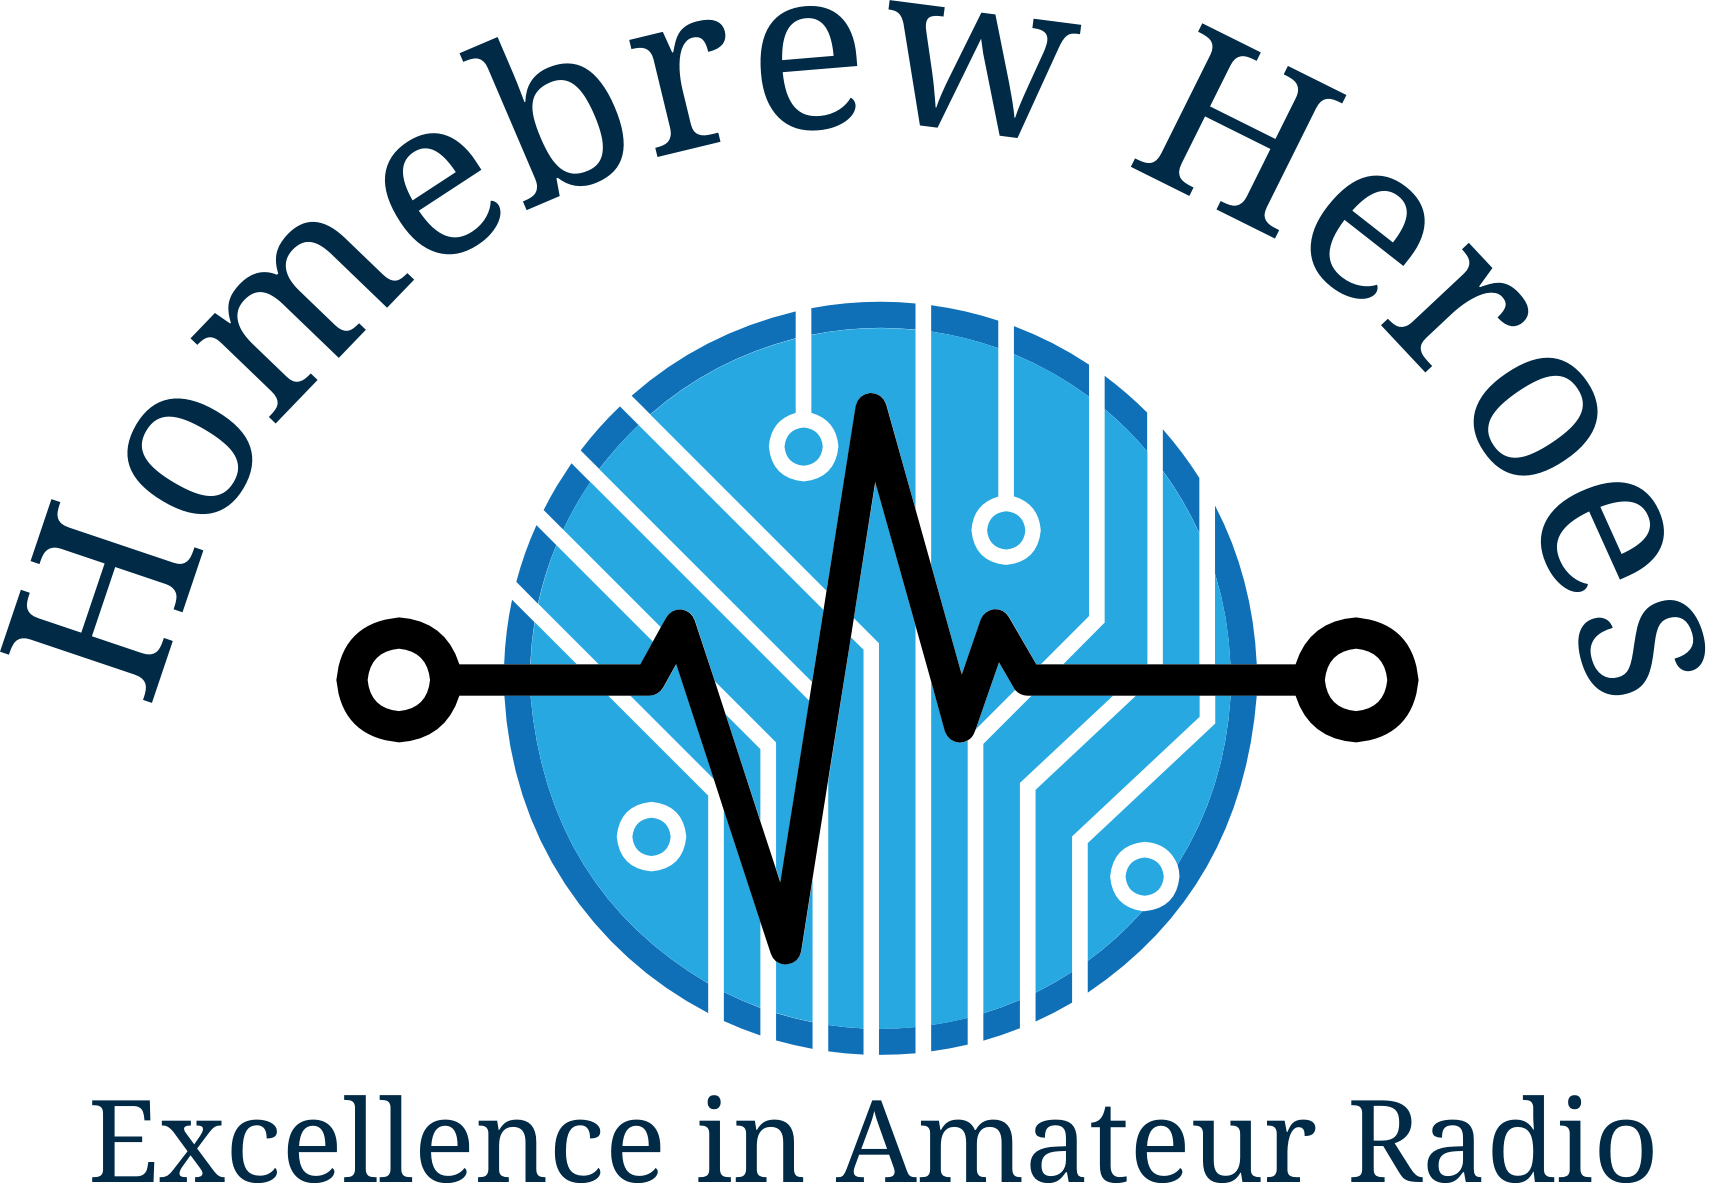 Award for Top Homebrew Designers in Amateur Radio Announced